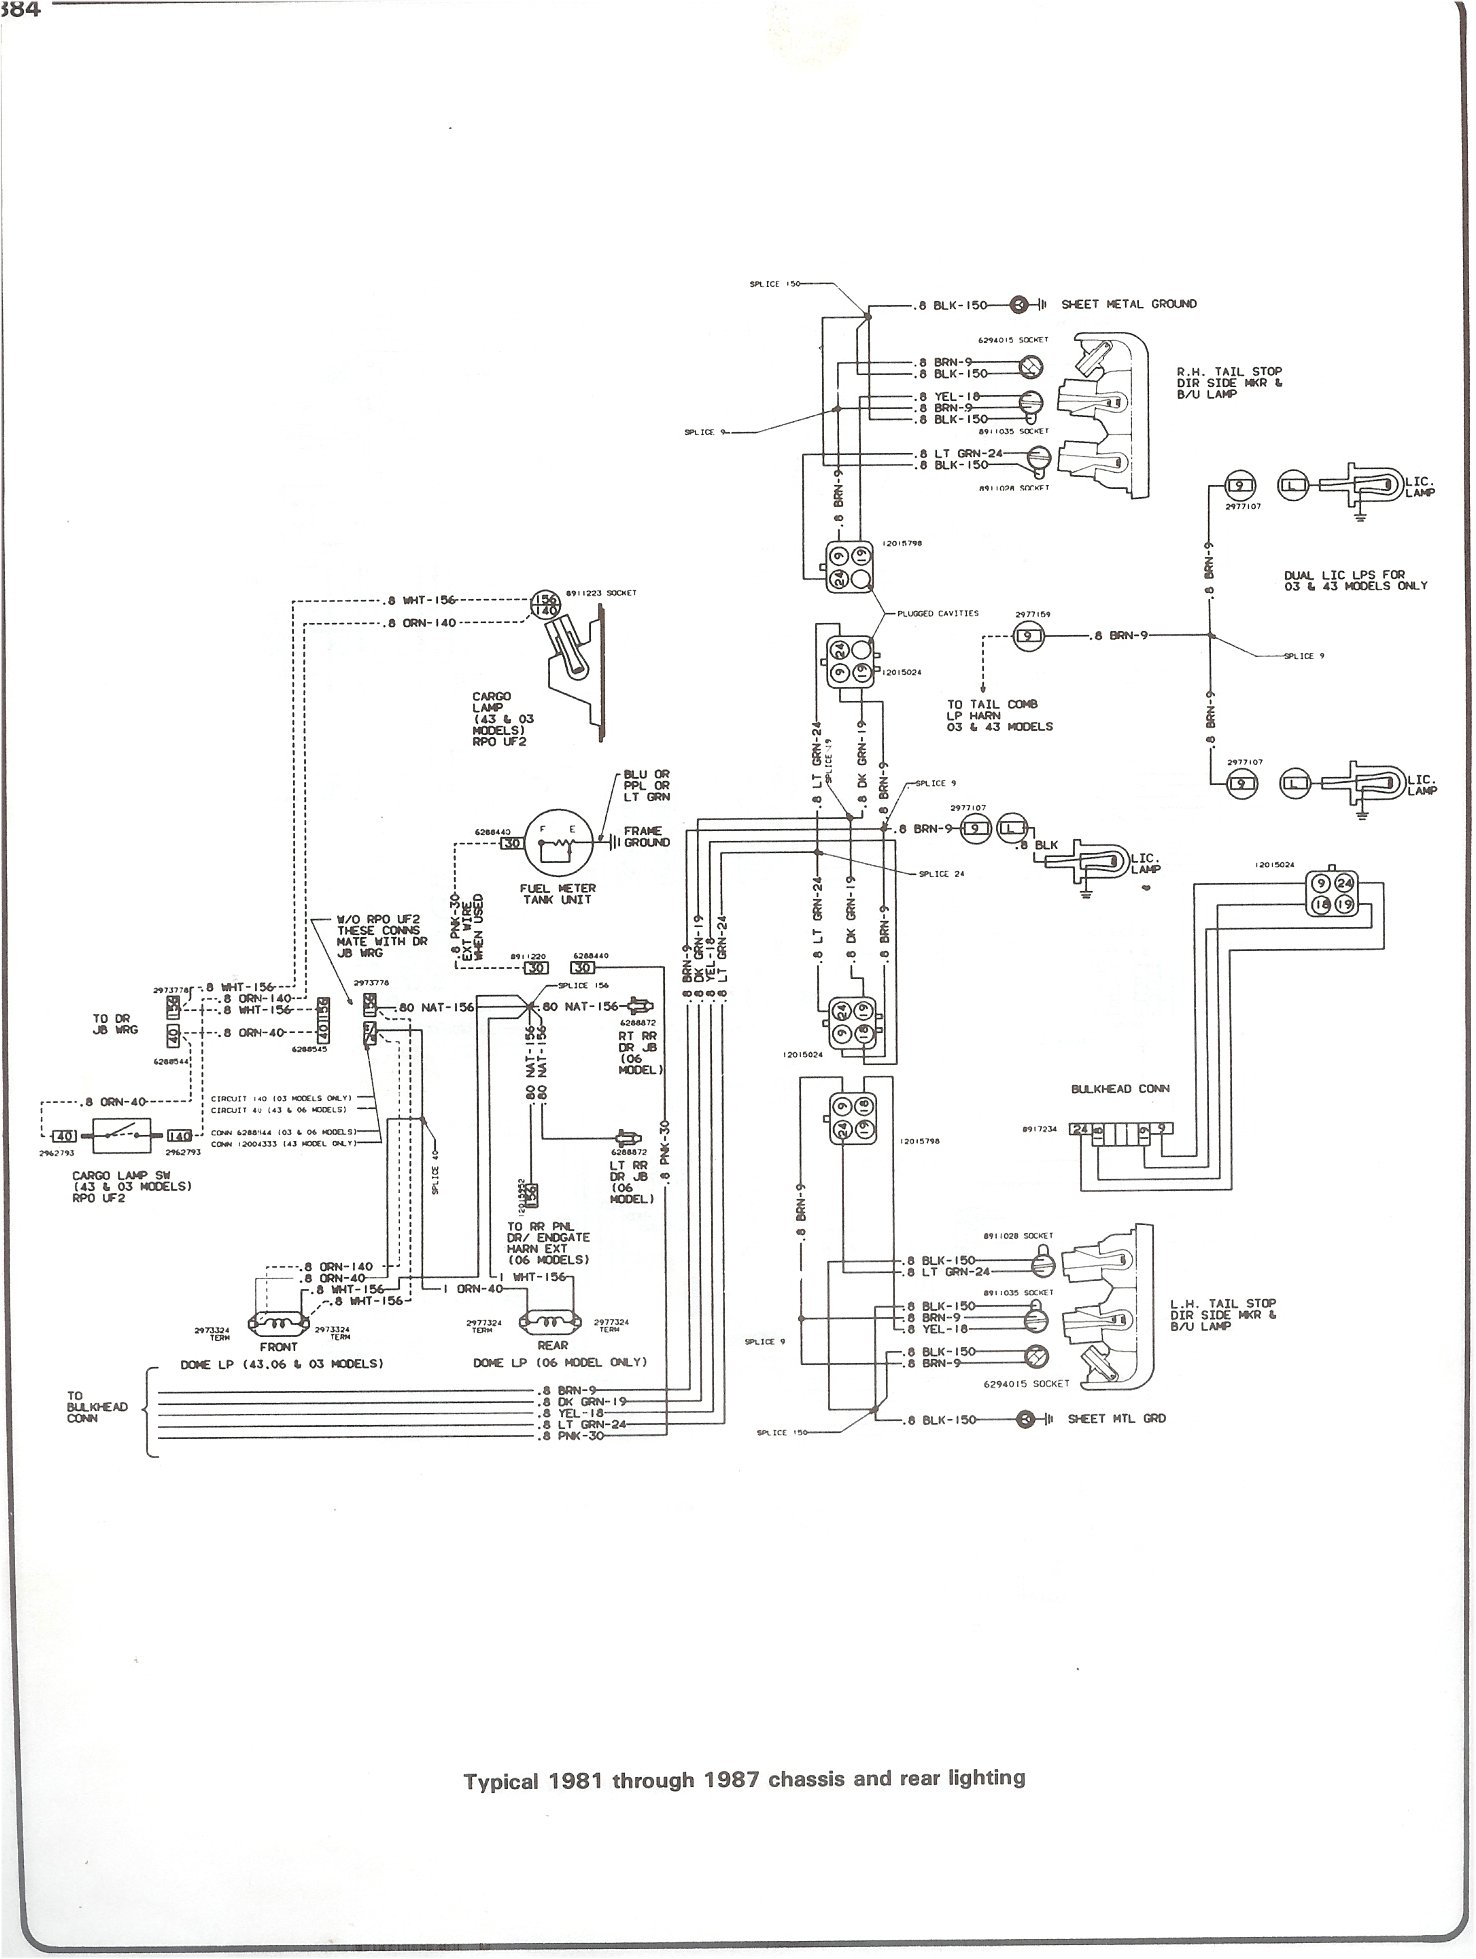 complete 73 87 wiring diagrams rh forum 73 87chevytrucks com 1986 chevy truck alternator wiring diagram 1986 chevy truck power window wiring diagram